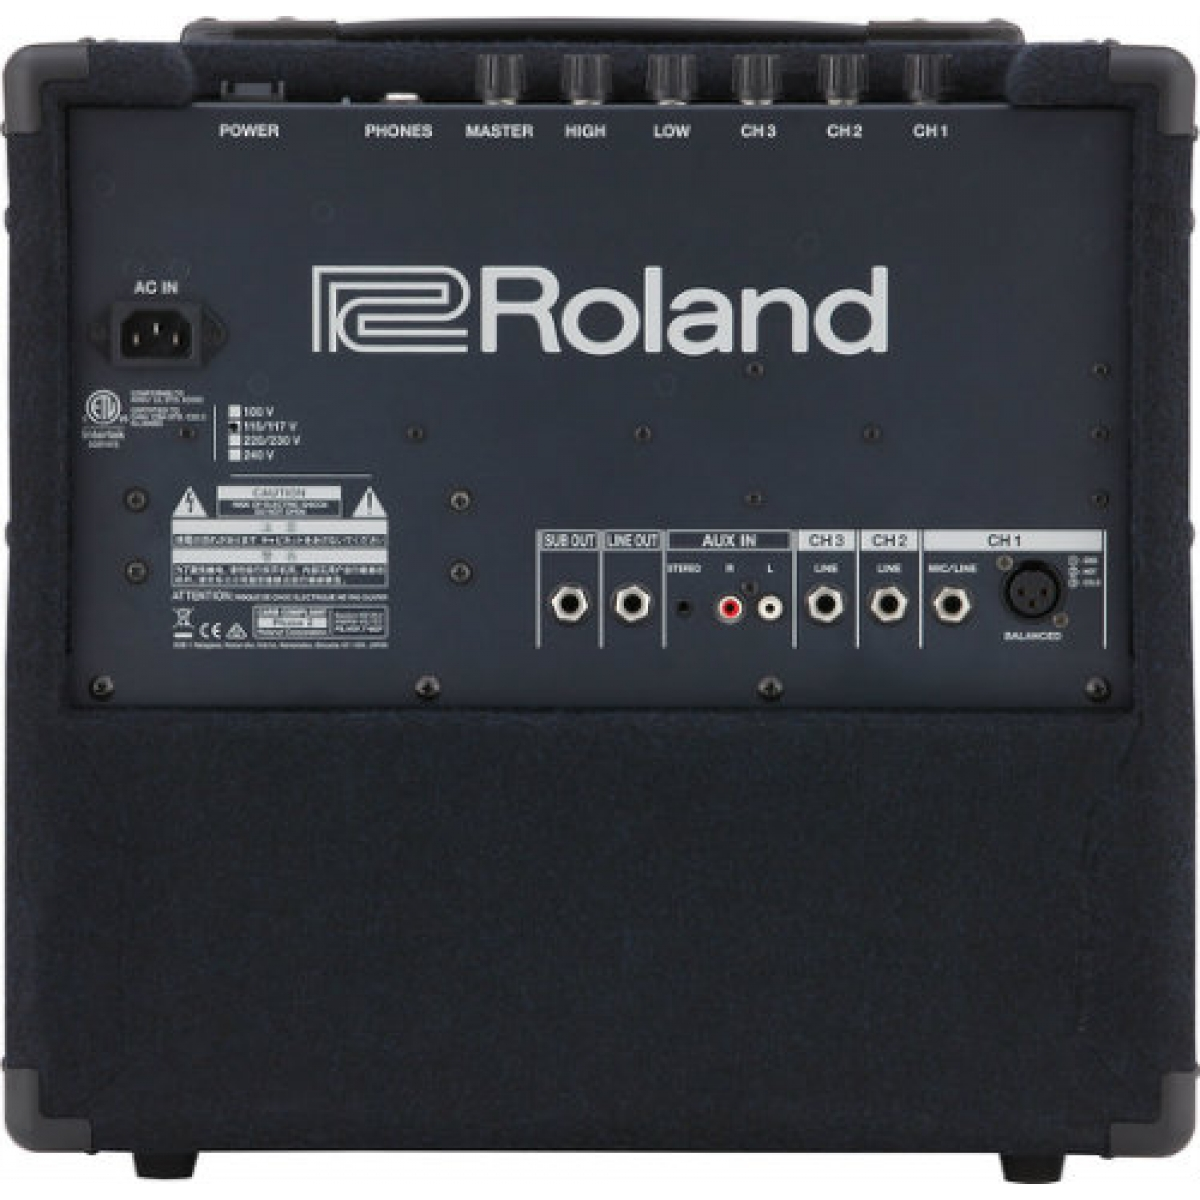 roland kc80 3 channel mixing keyboard drum amplifier 50w at promenade music. Black Bedroom Furniture Sets. Home Design Ideas